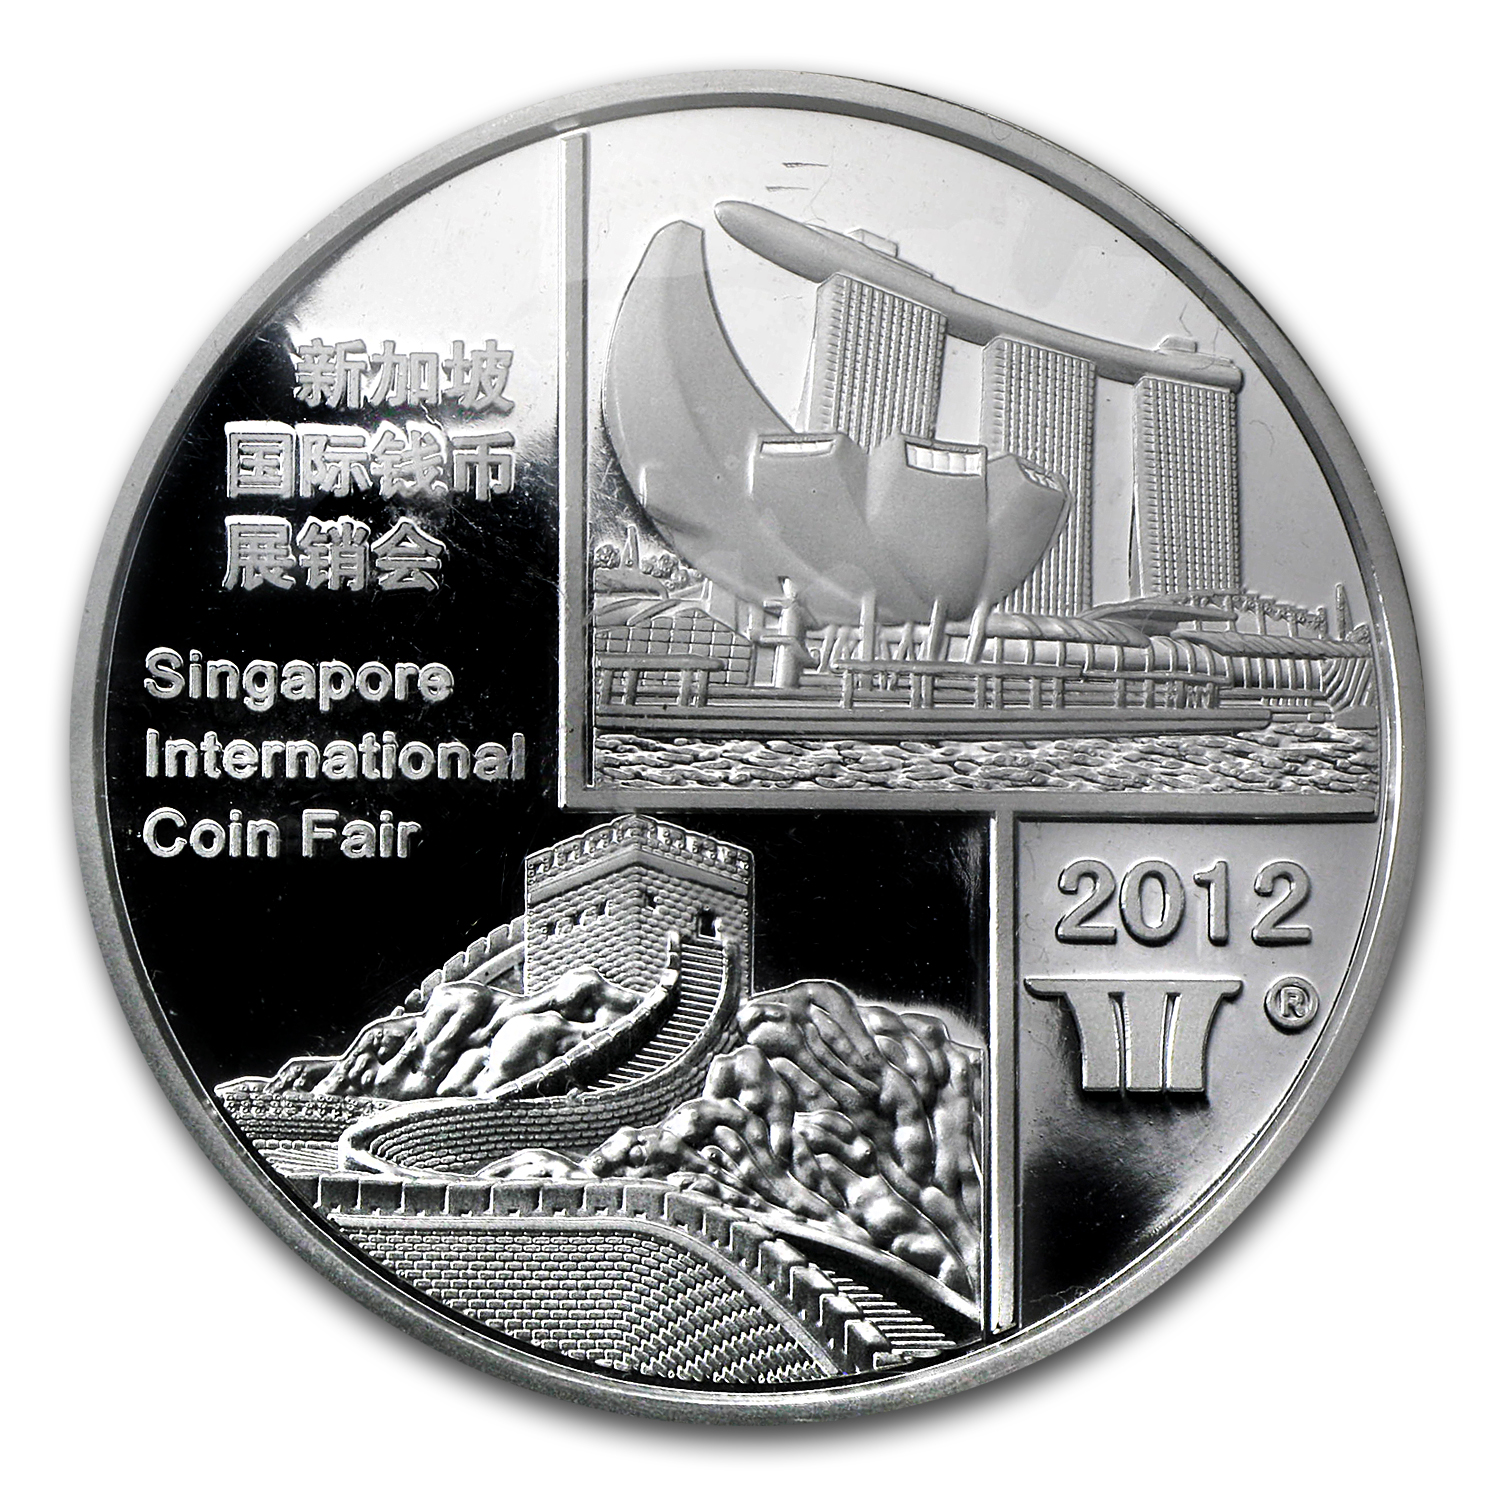 2012 China 1 oz Silver Panda Singapore Coin Fair (w/Box & COA)